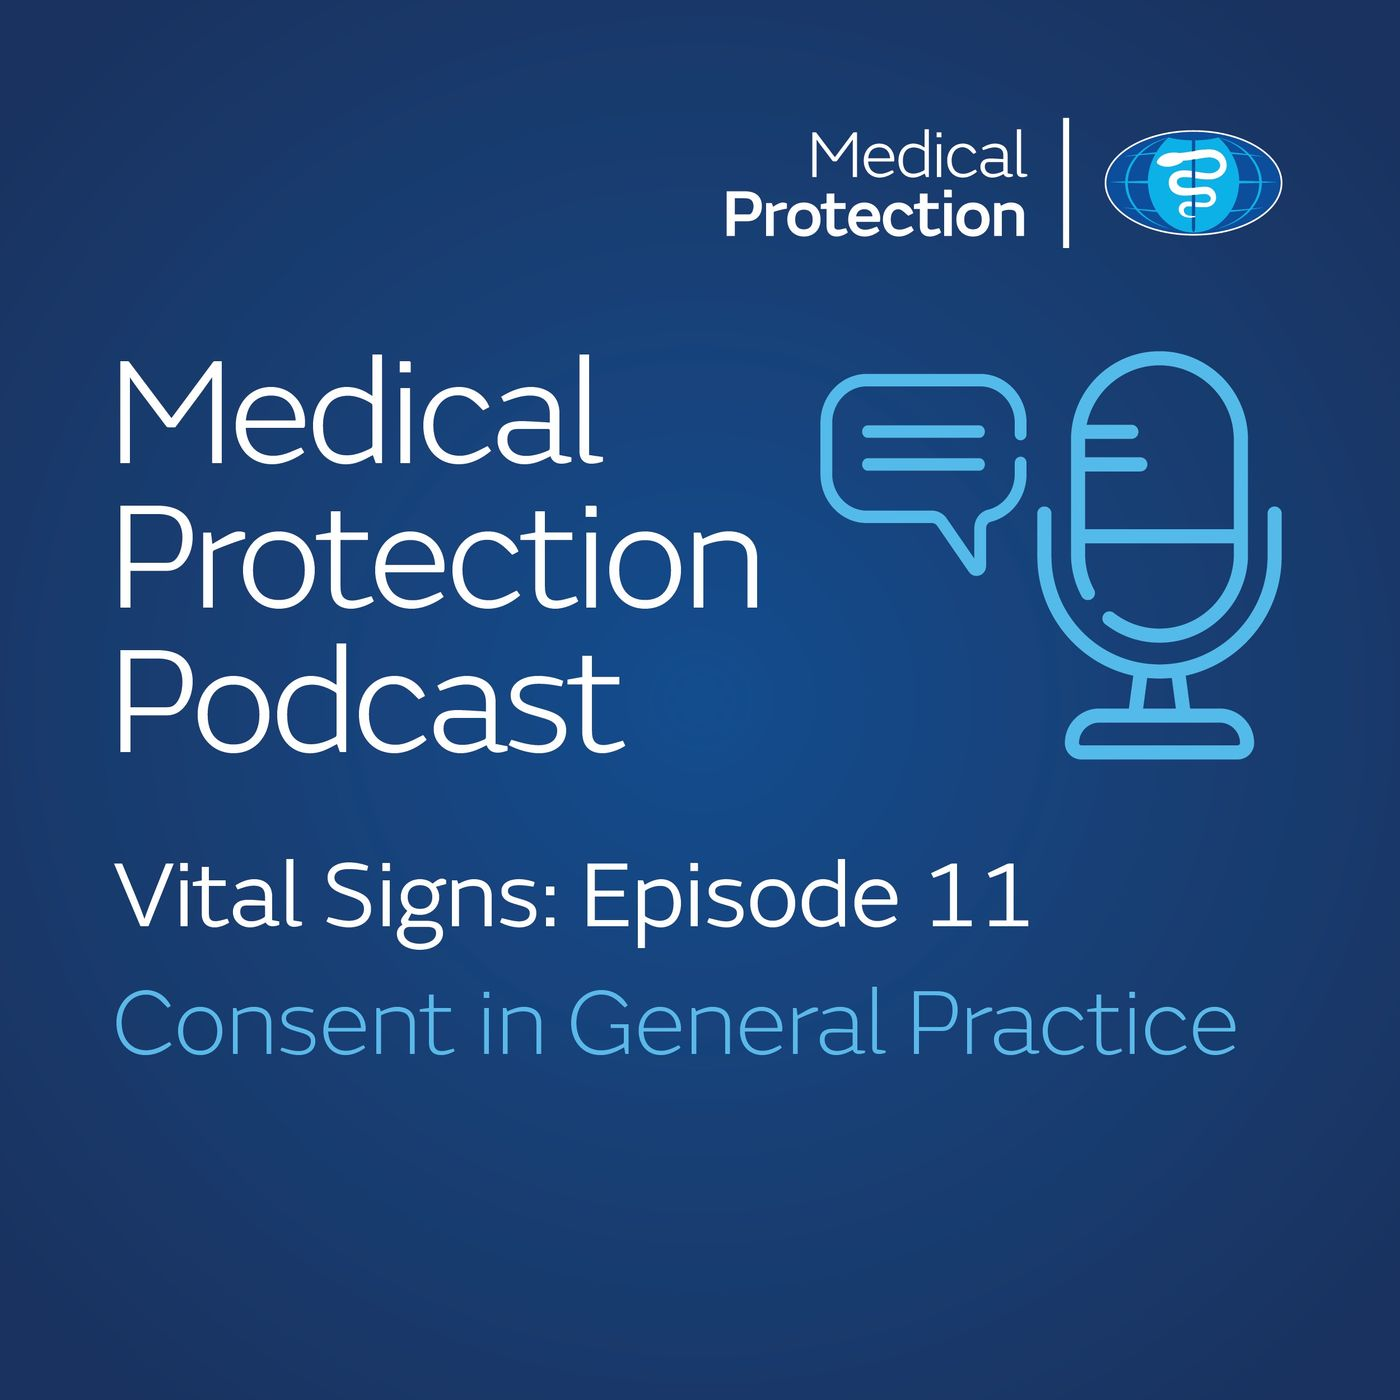 Vital signs episode 11: Consent in general practice